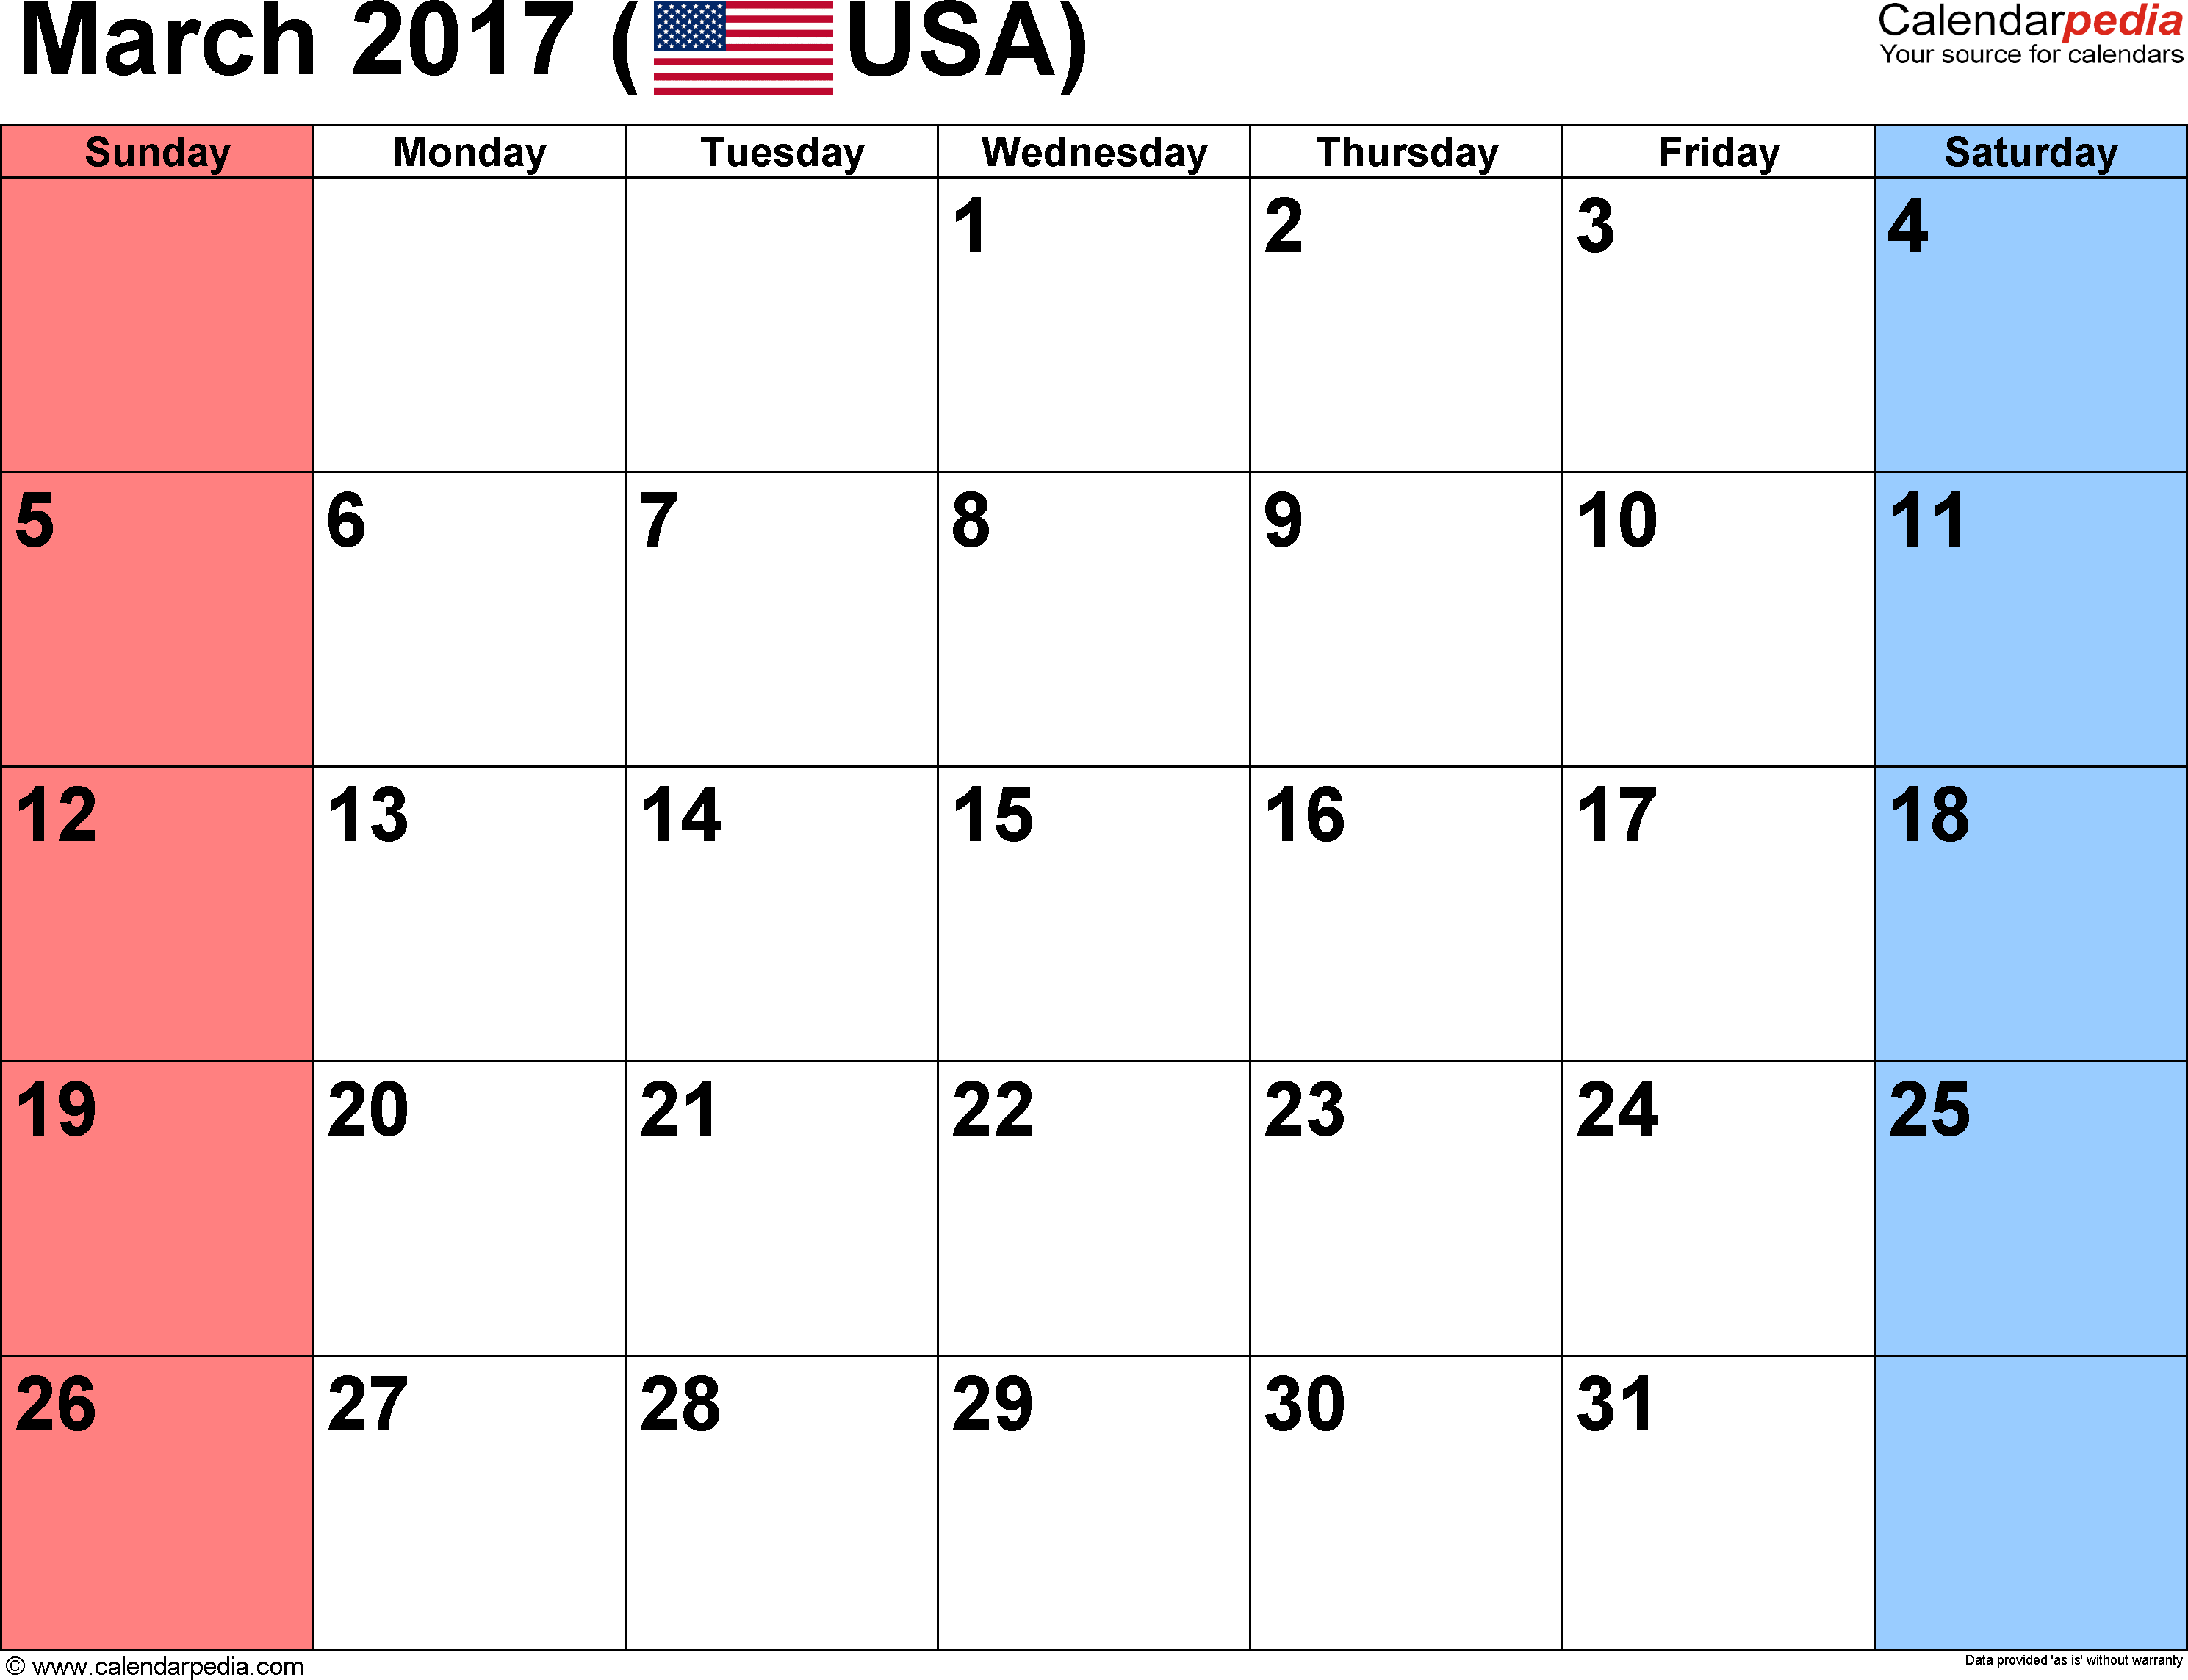 2014 u.s. holidays list